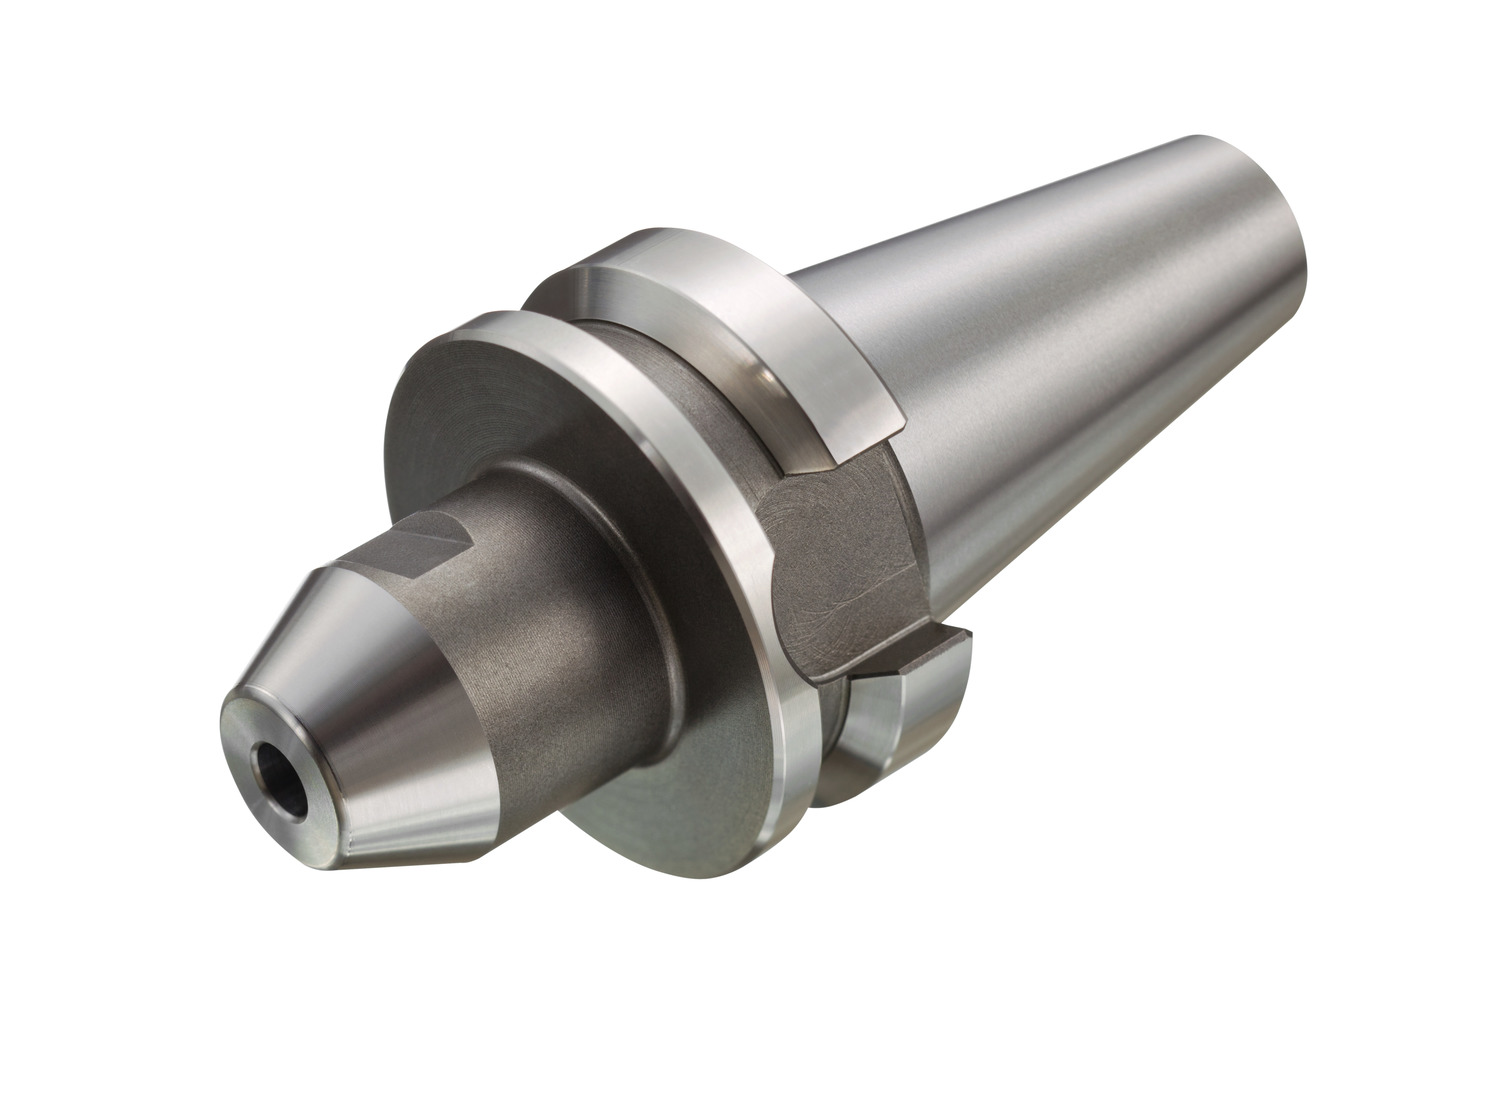 A2B20-40 08 100 - Cross System, Extension & Reducer Adapters